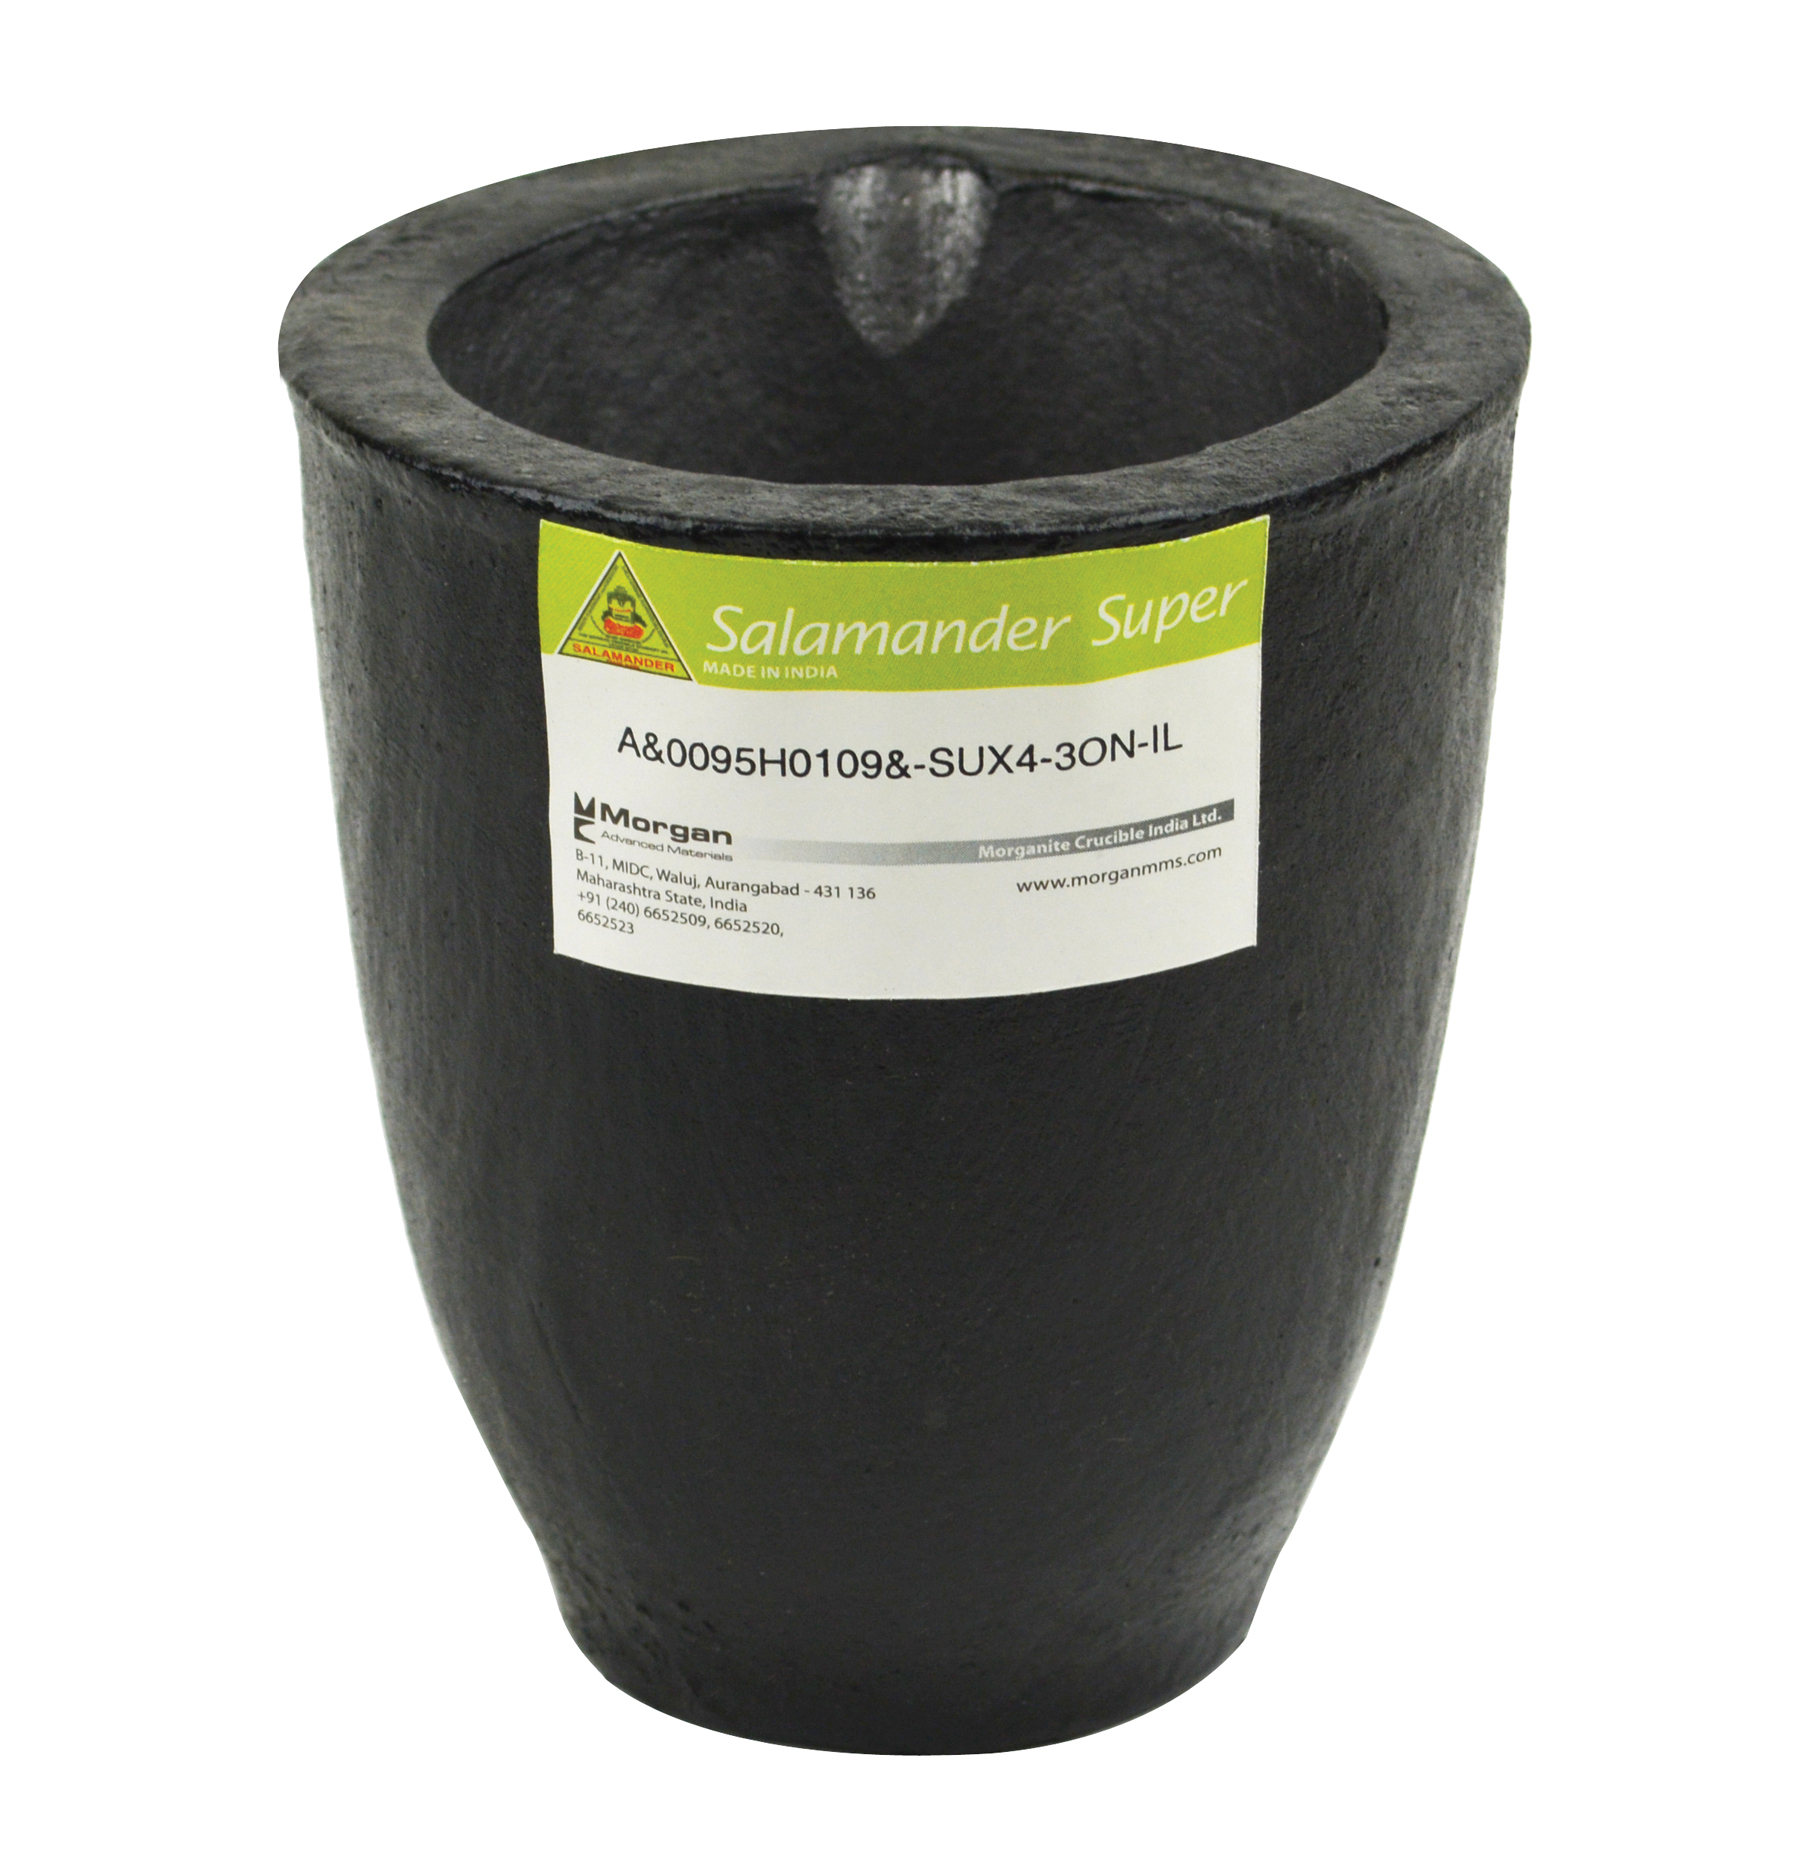 Crucibles Pmc Supplies Pmcsupplies Com